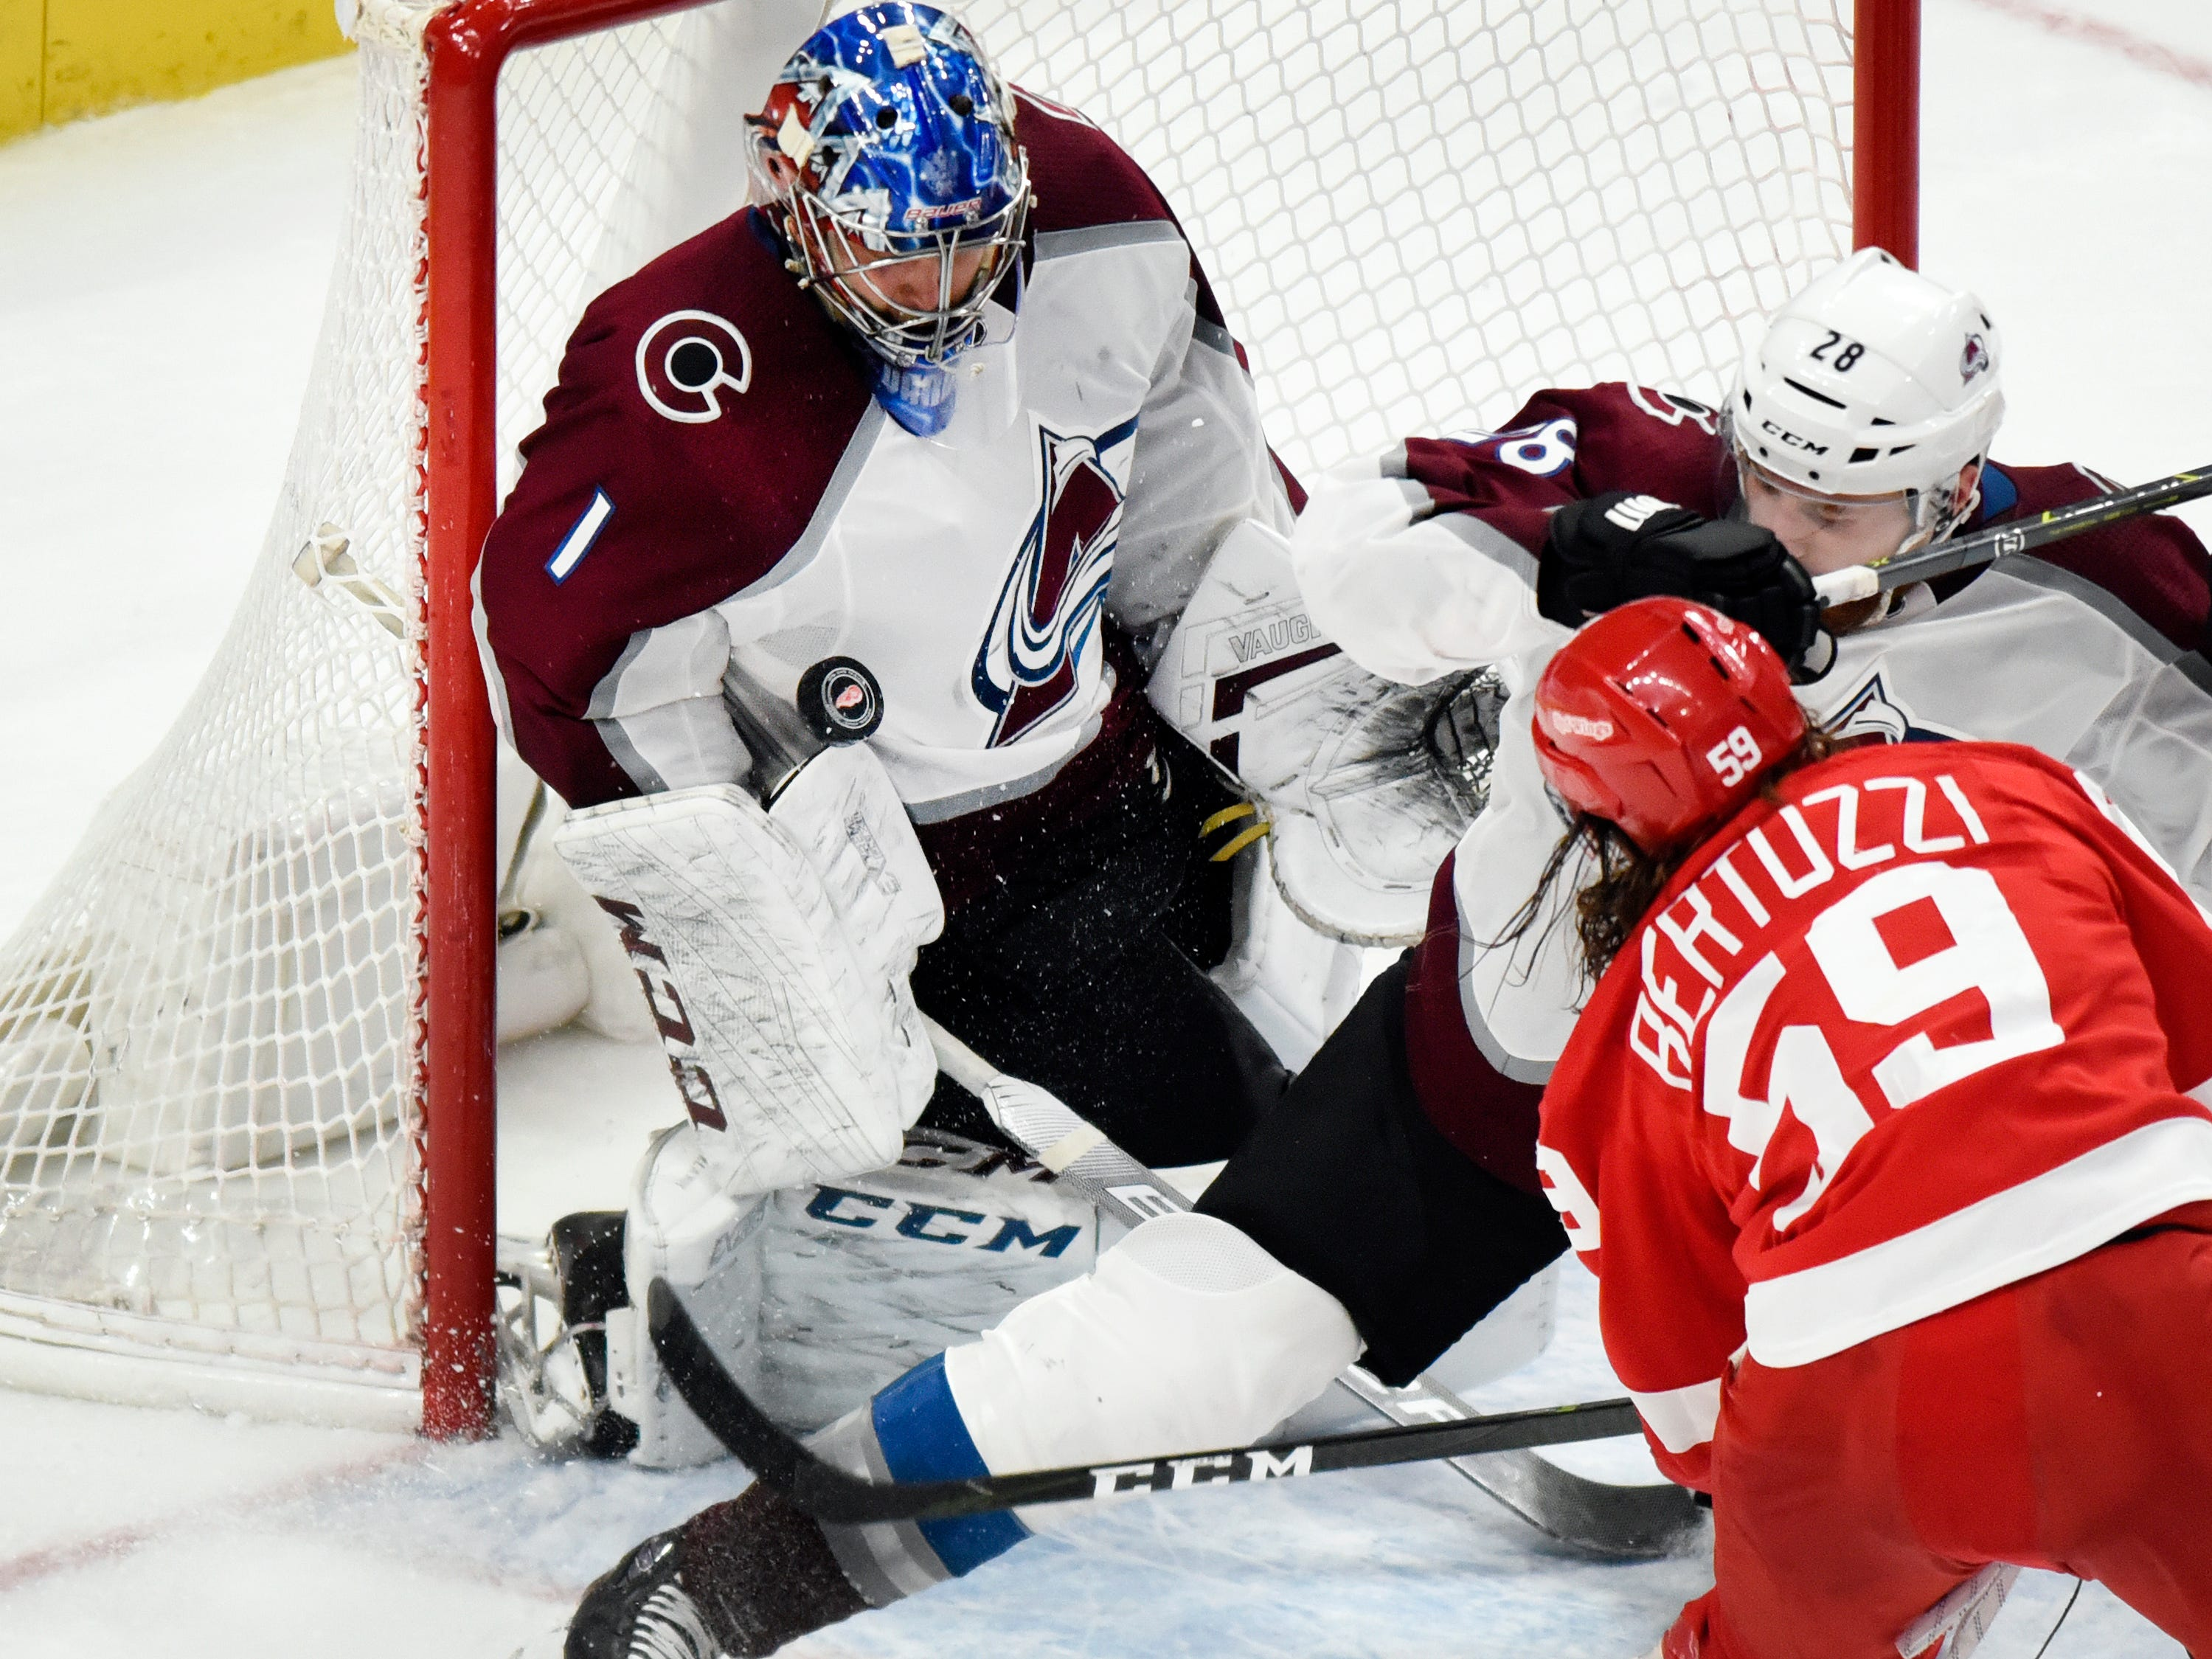 Colorado Avalanche goaltender Semyon Varlamov (1) of Russia blocks the shot of Detroit Red Wings left wing Tyler Bertuzzi (59) as defenseman Ian Cole (28) slides in during the third period.